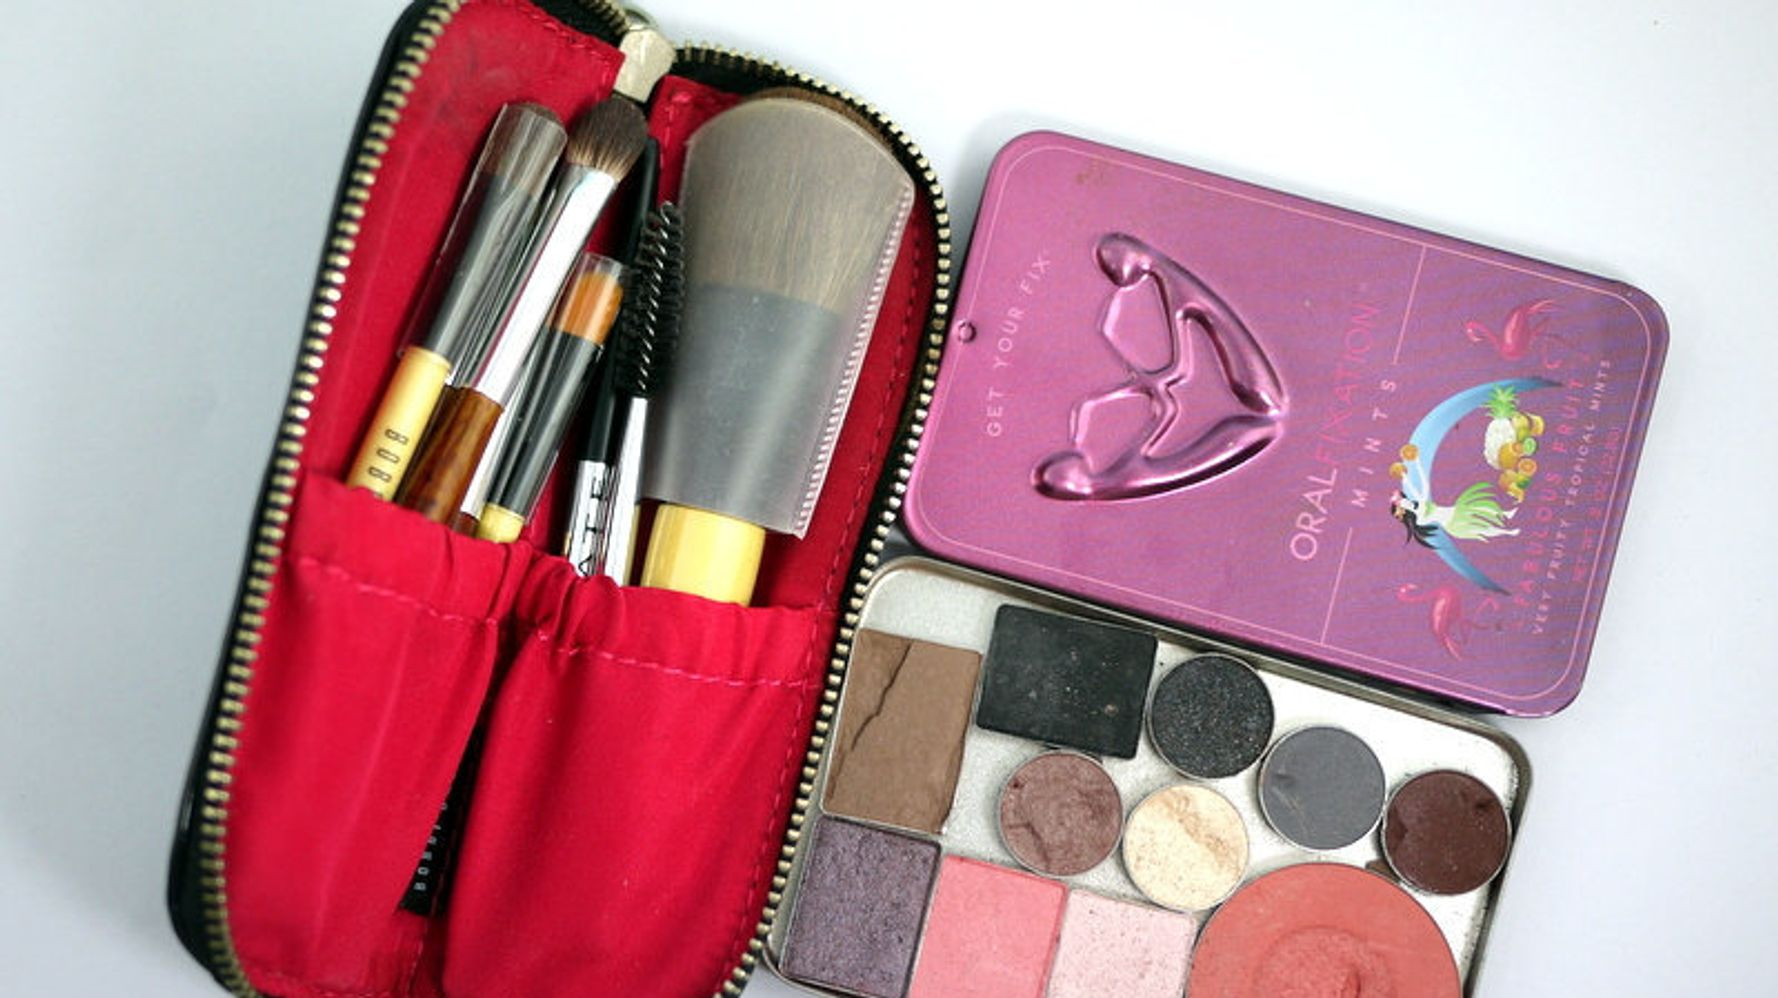 Depotting Is A Makeup Hack That'll Save You Lots Of Money